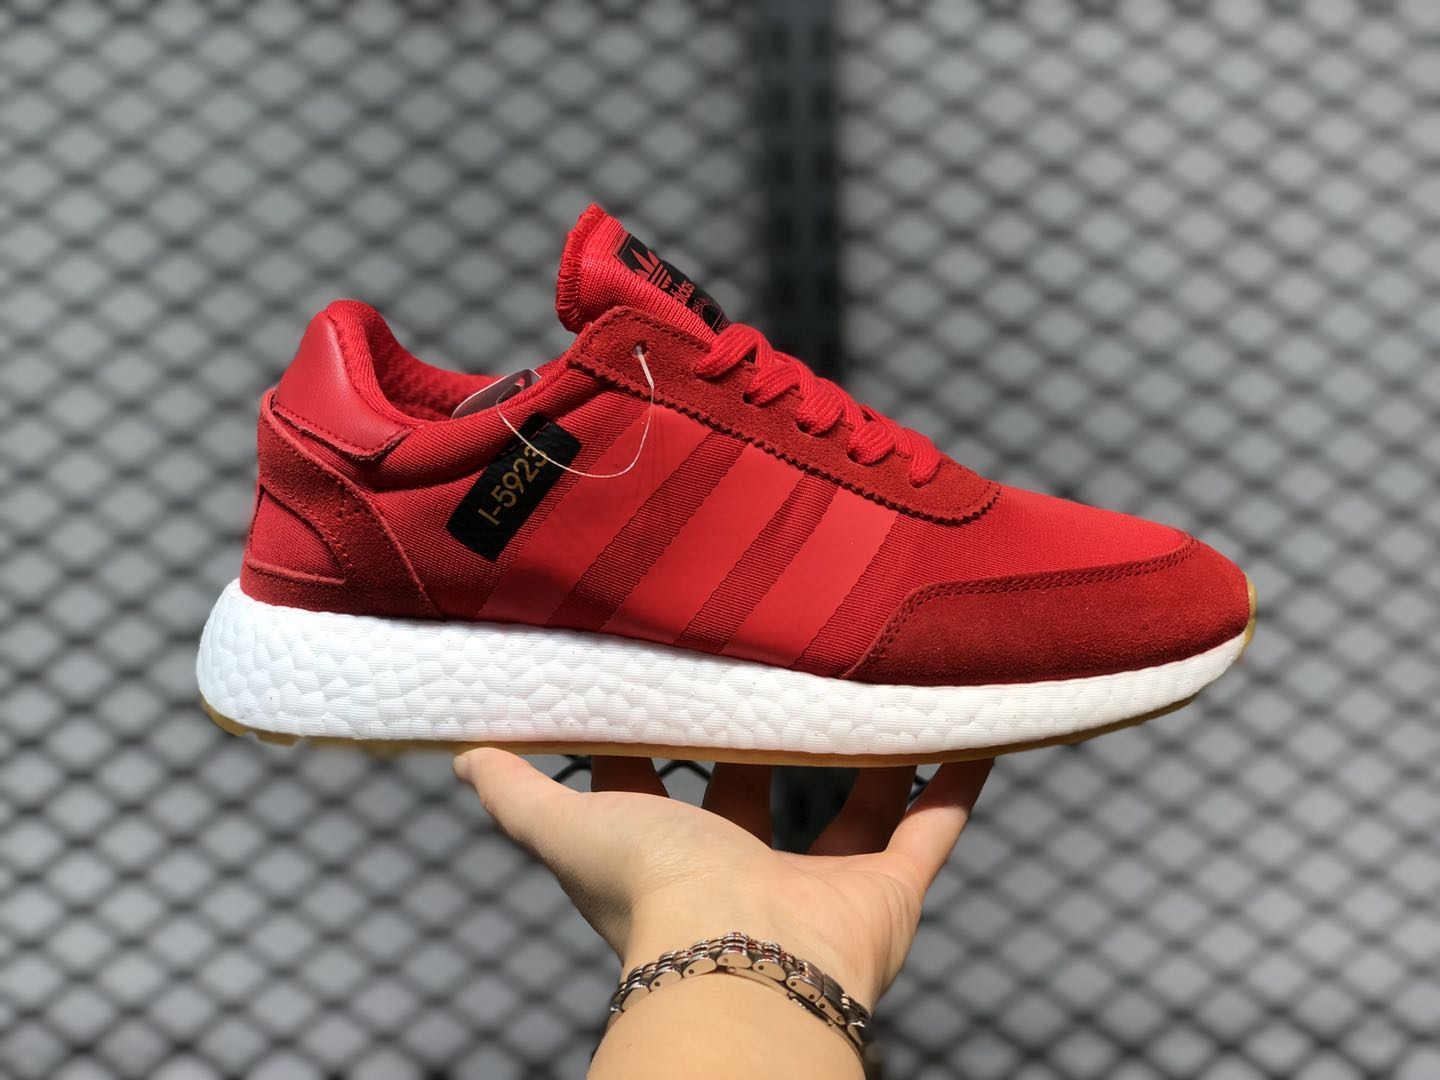 Adidas L-5923 Originals Trainers Gym Red/White For Buy B42225